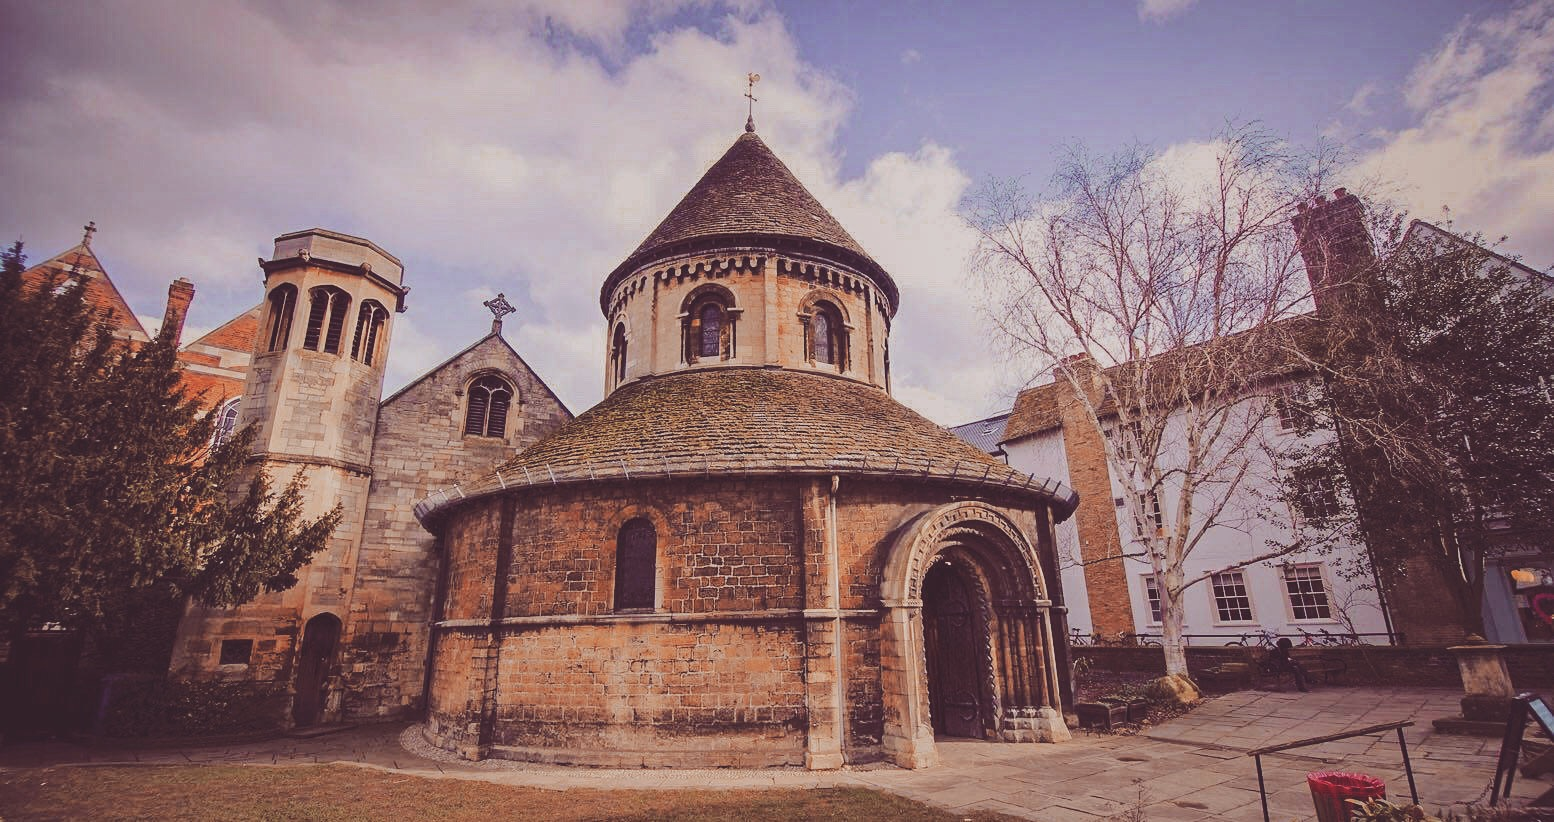 CHURCH OF THE HOLY SEPULCHRE, KNOWN AS THE ROUND CHURCH (1130AD)